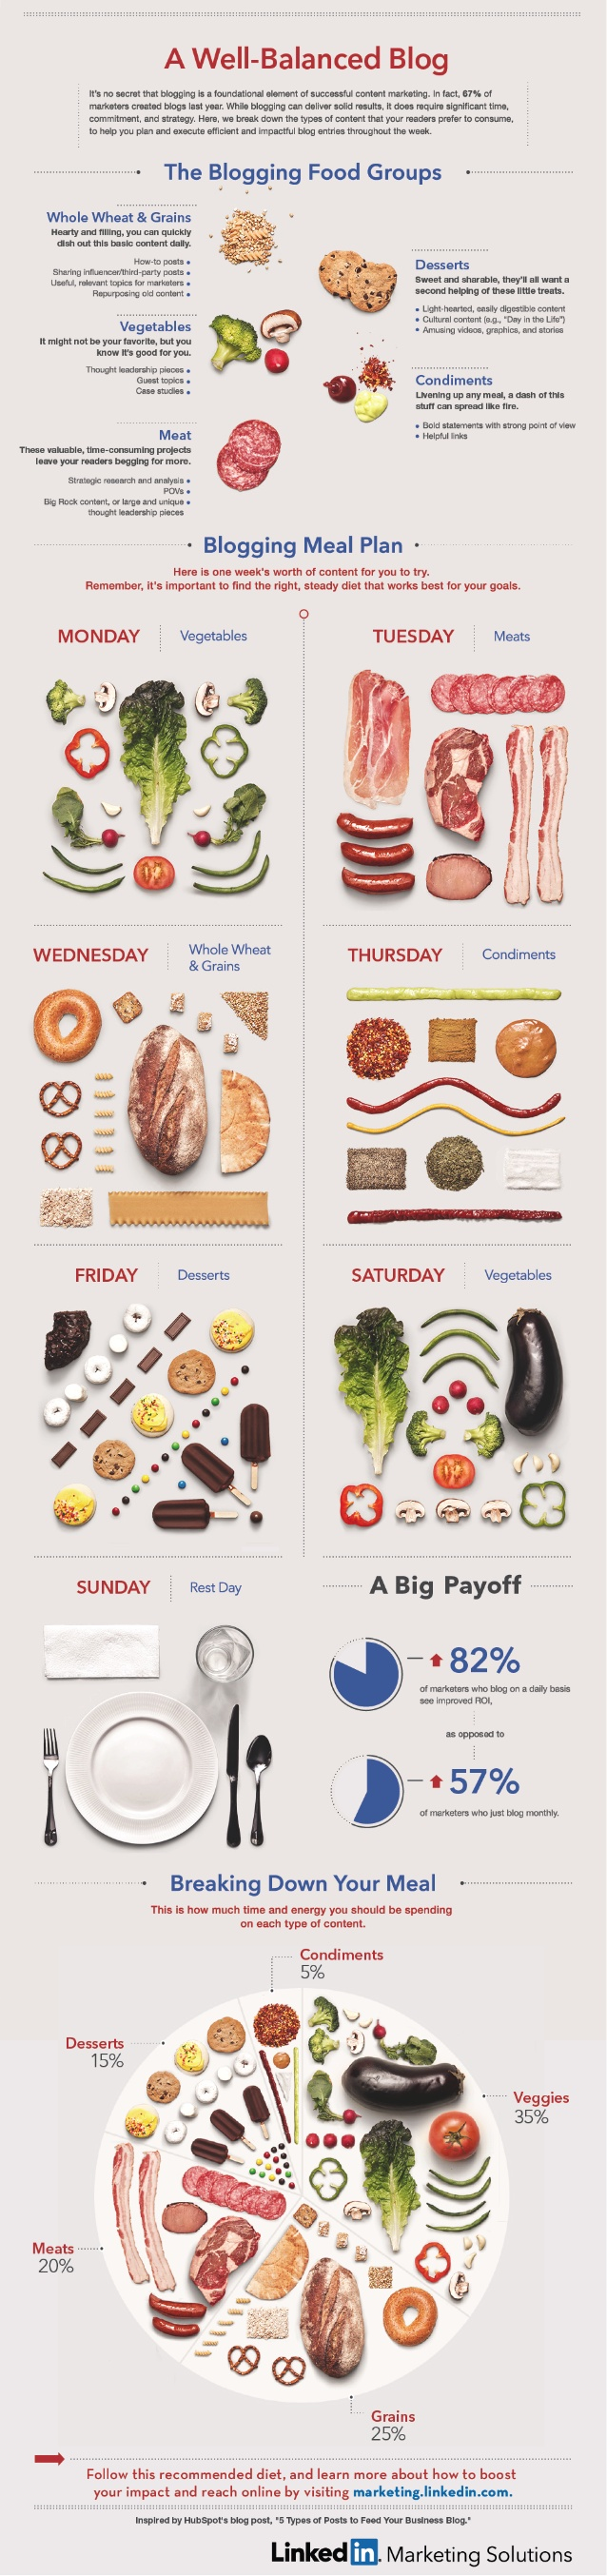 A Well-Balanced Plate of Content - Infographic